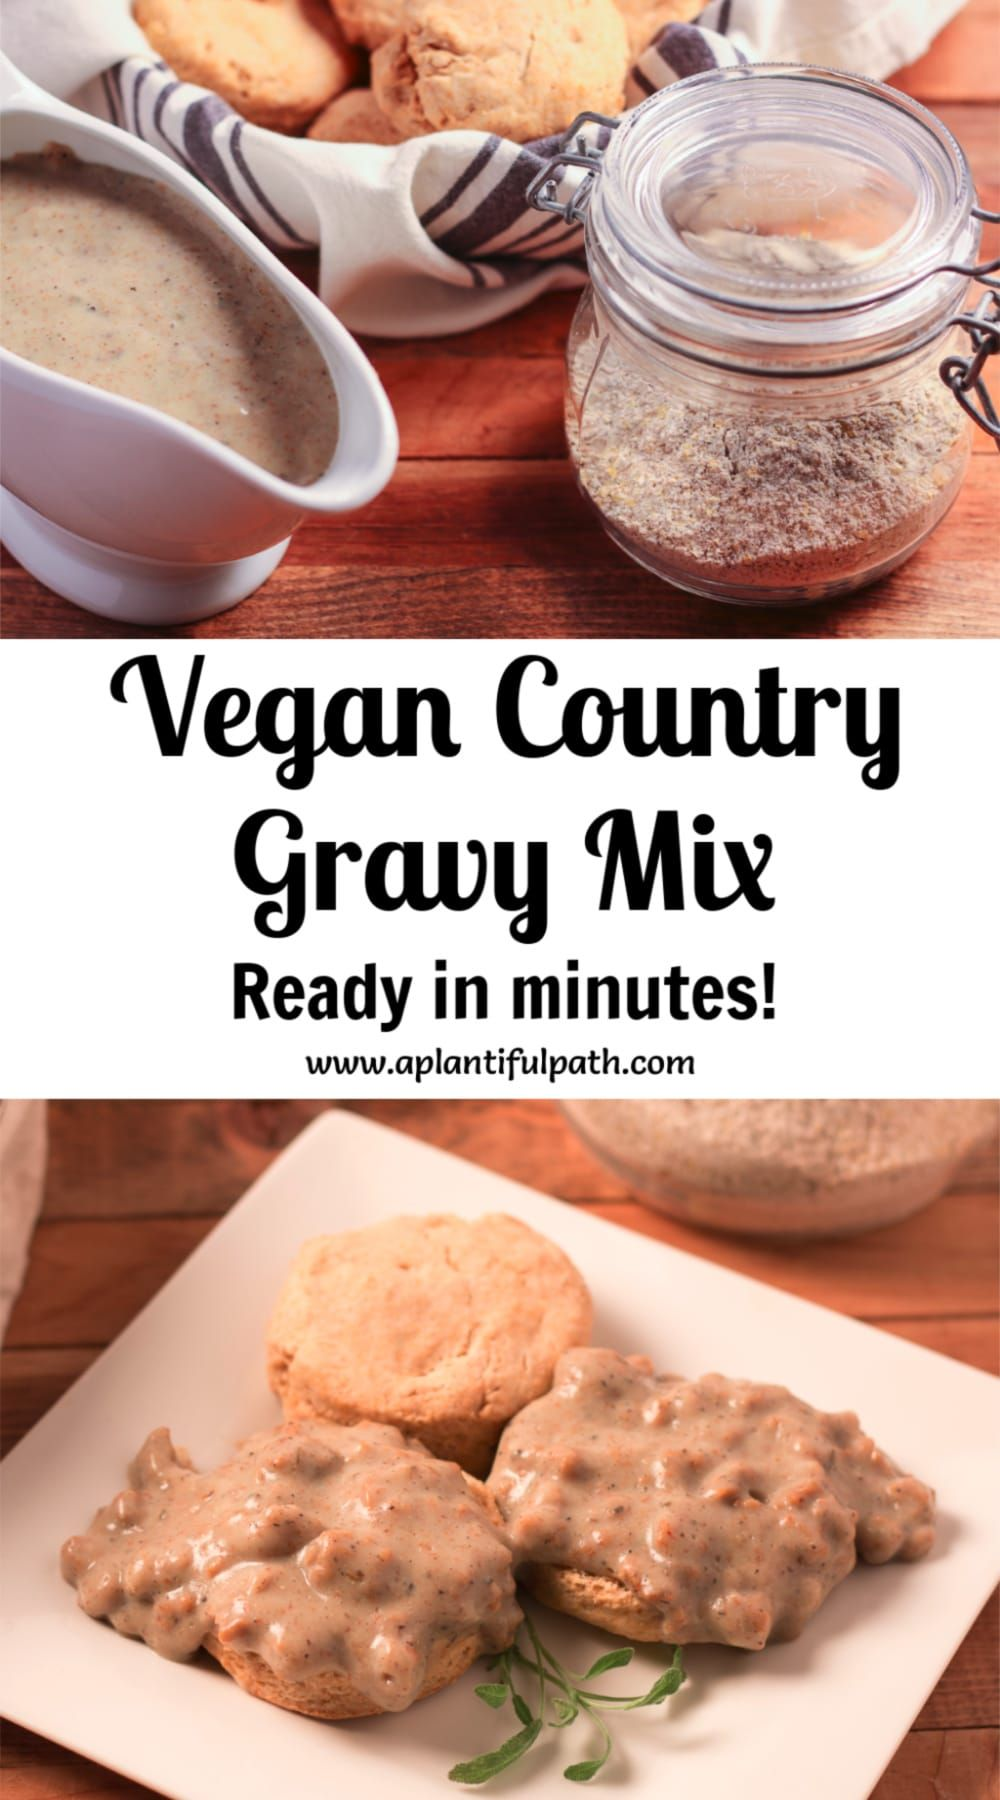 Easy Vegan Country Gravy Mix Oil Free A Plantiful Path Recipe In 2020 Oil Free Vegan Recipes Vegan Biscuits And Gravy Vegan Sausage